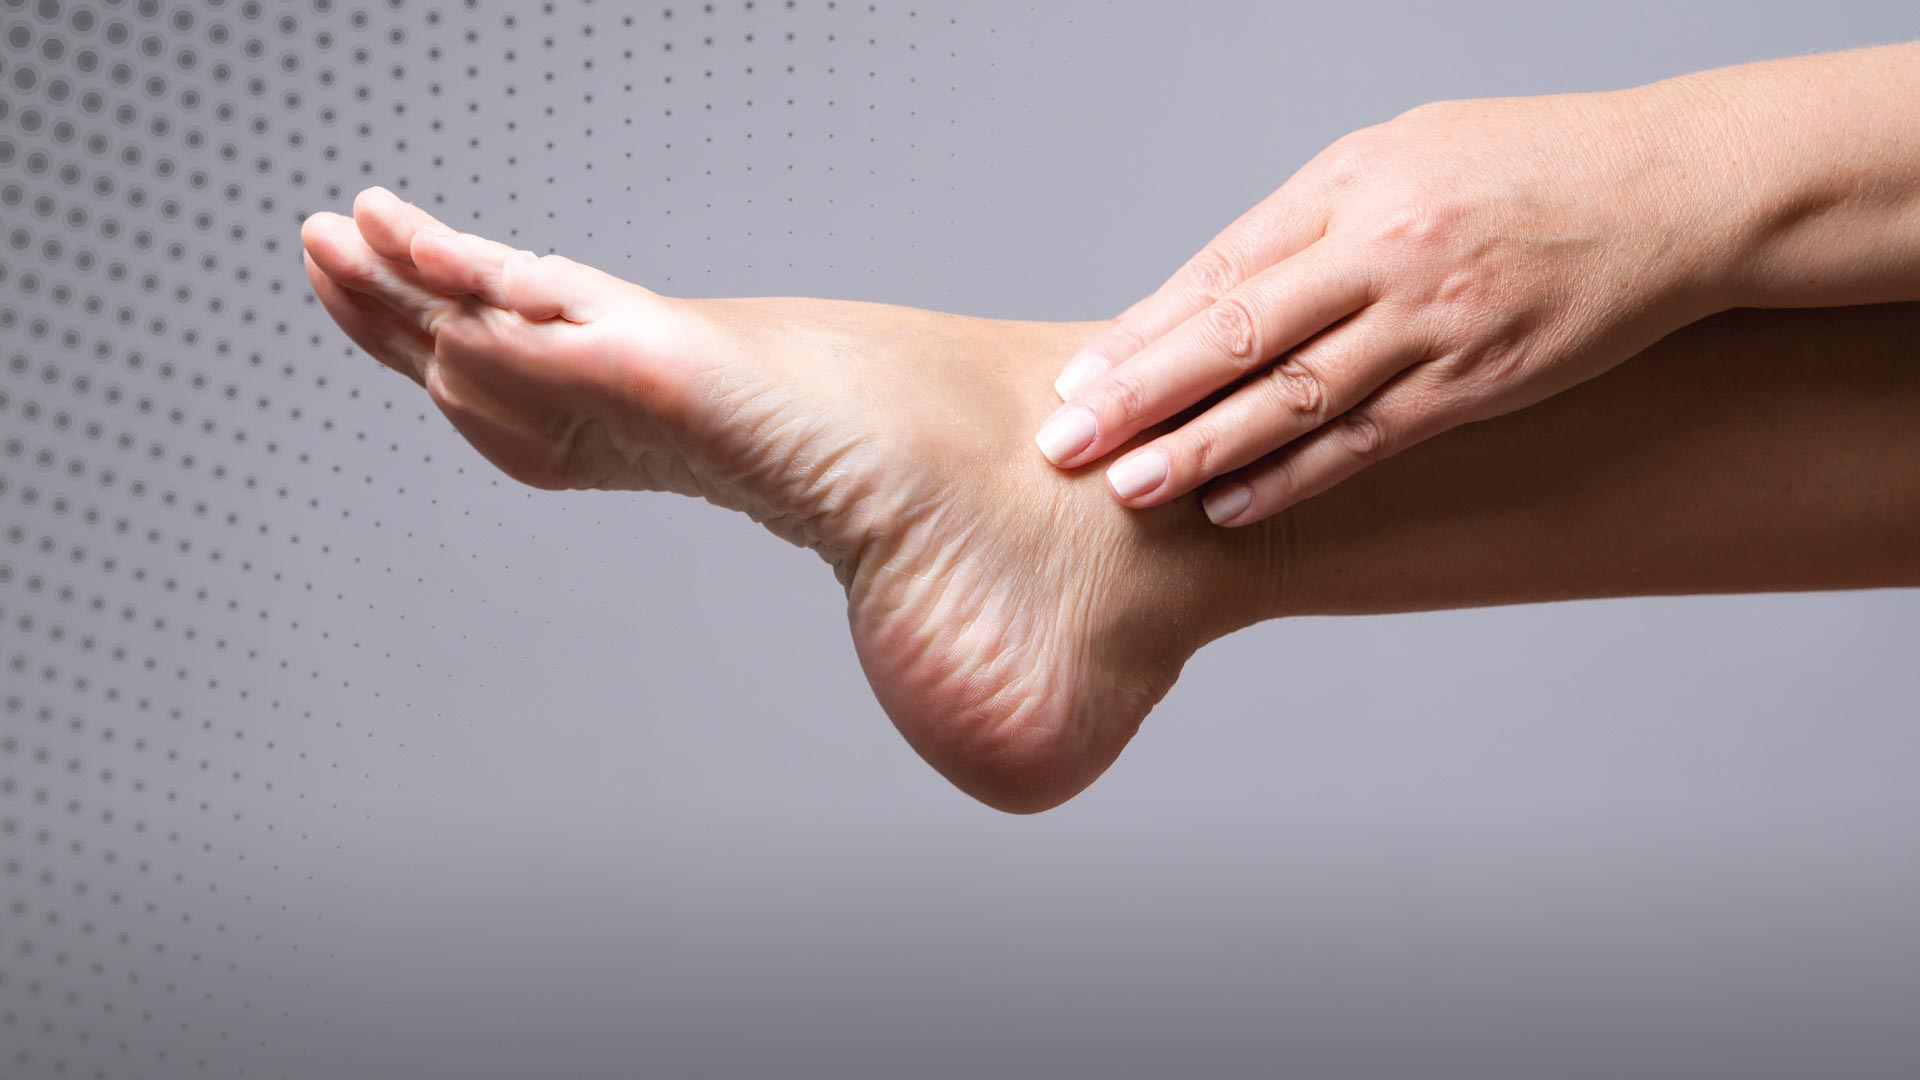 Malvern Foot Clinic - Chiropody, Biomechanical, Orthoses, Nail Surgery , Foot Surgery